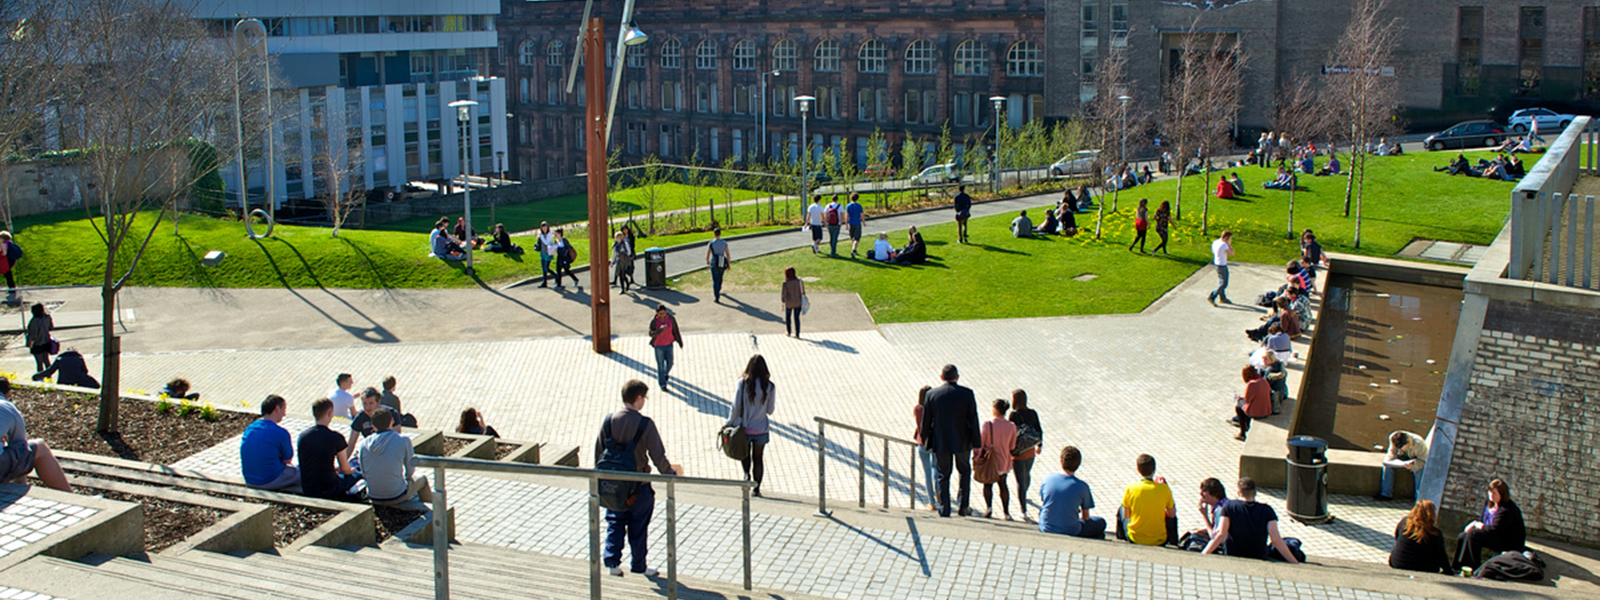 Rottenrow Gardens, University of Strathclyde, in the sunshine